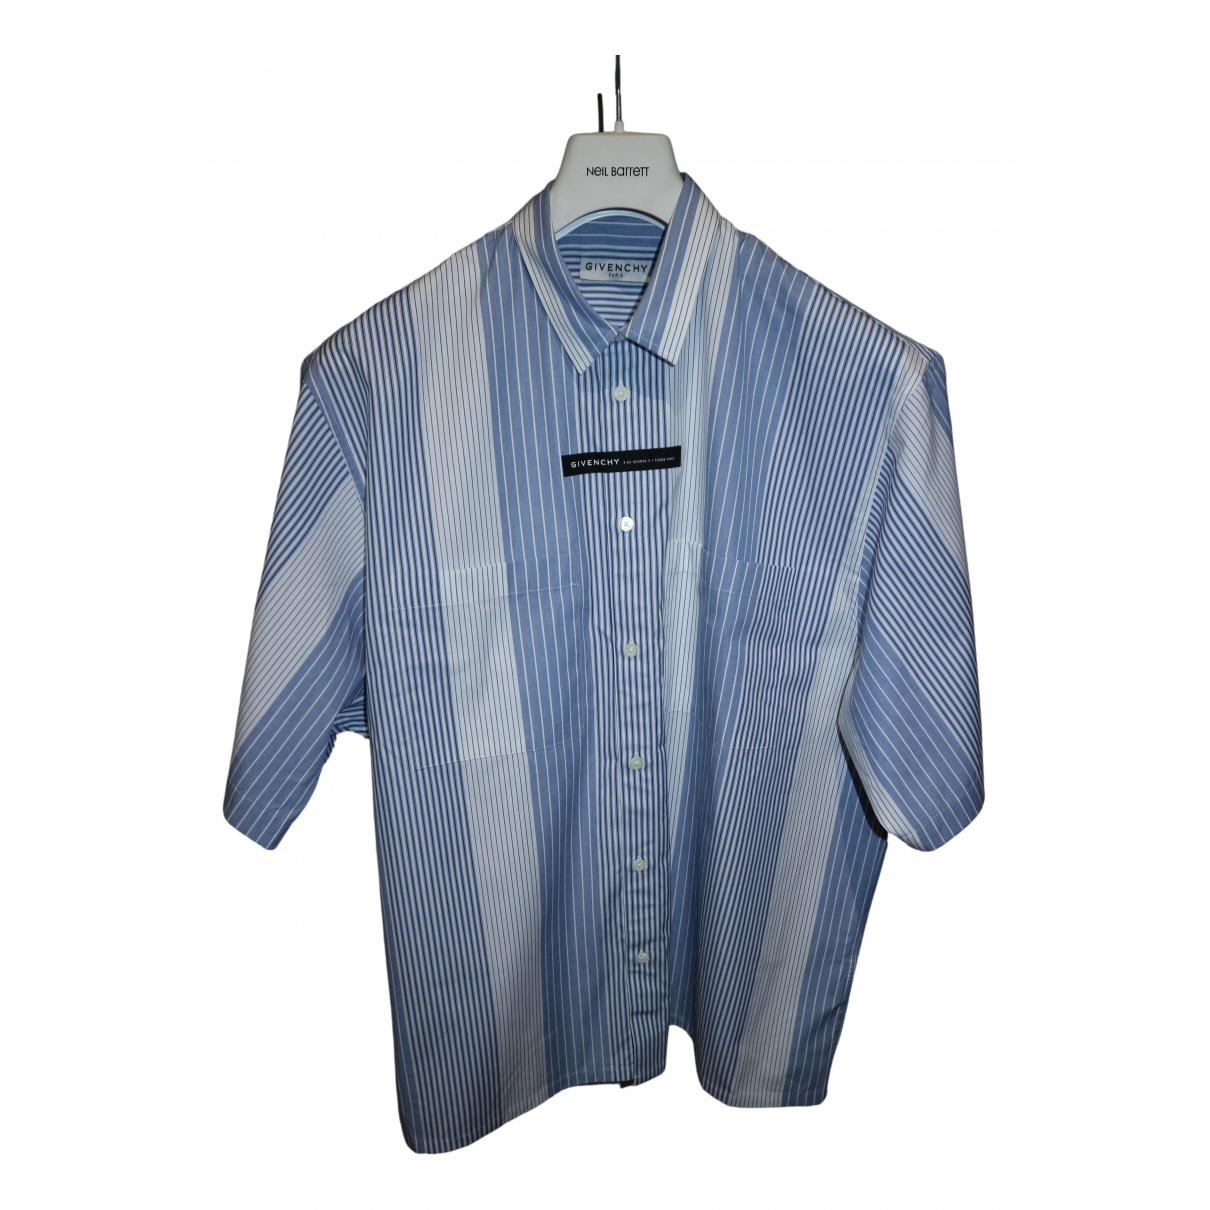 Givenchy N Blue Cotton Shirts for Men M International